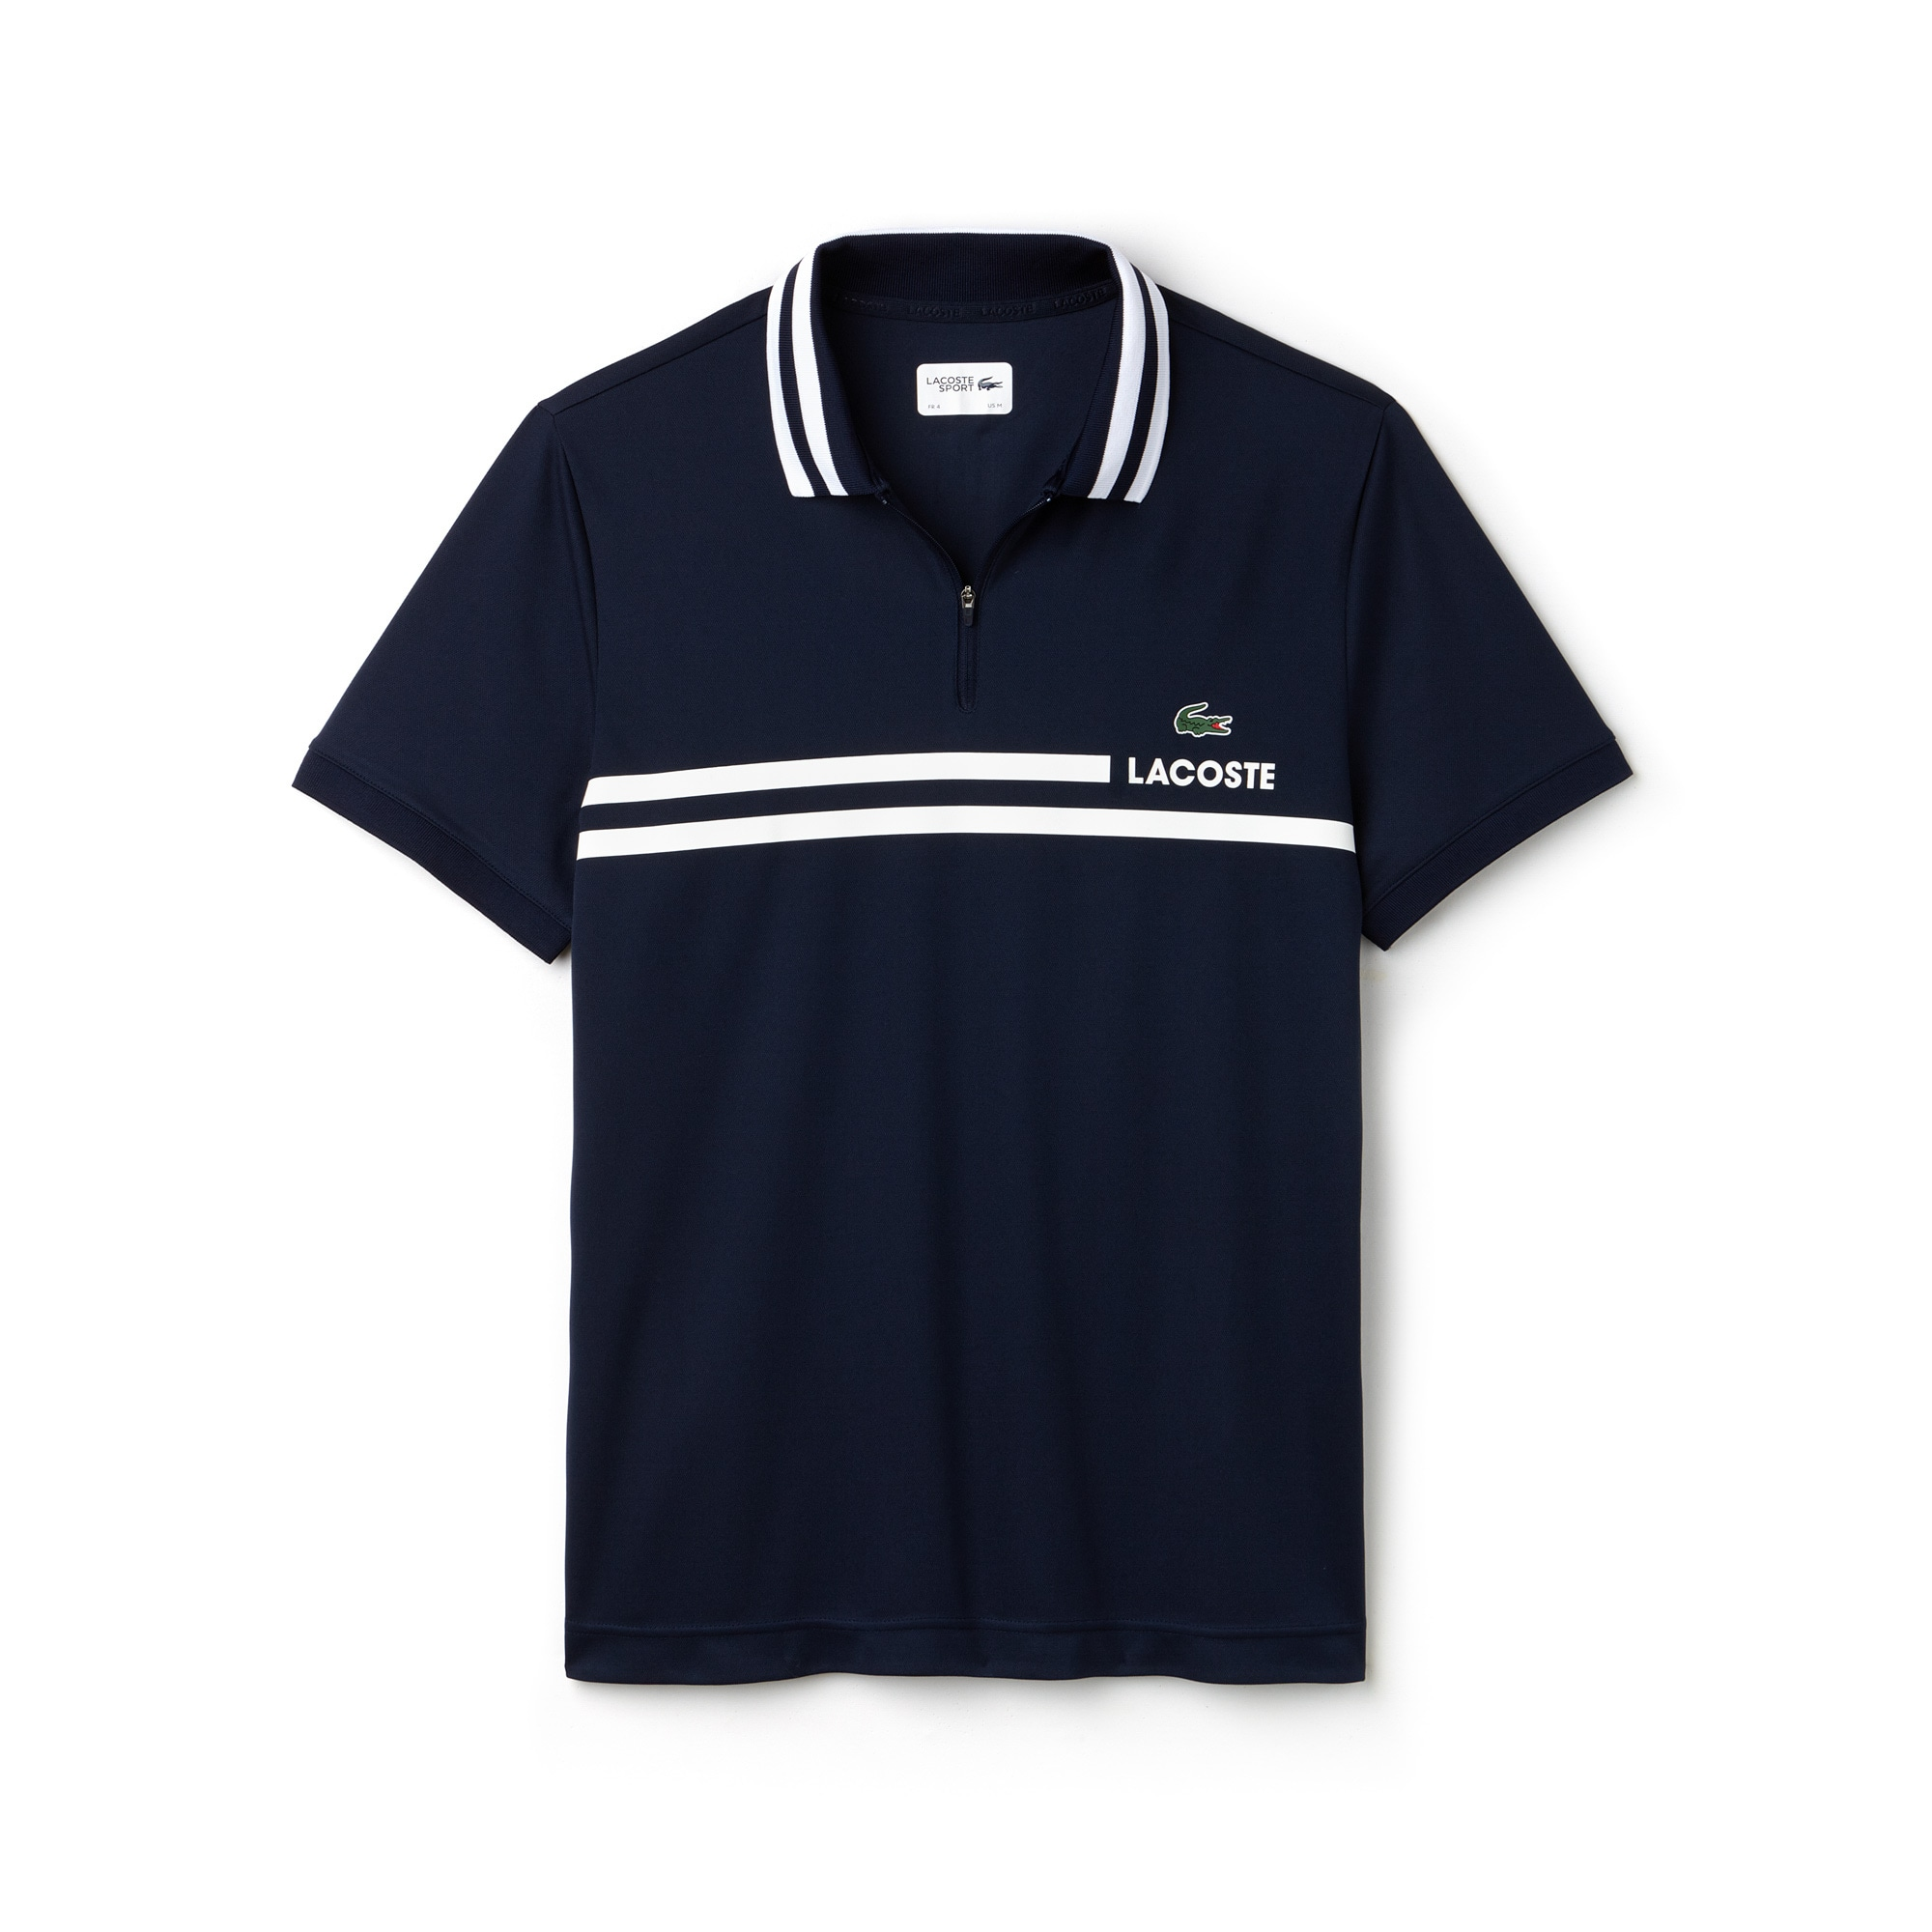 Men's Lacoste SPORT Contrast Band Tech Piqué Tennis Polo